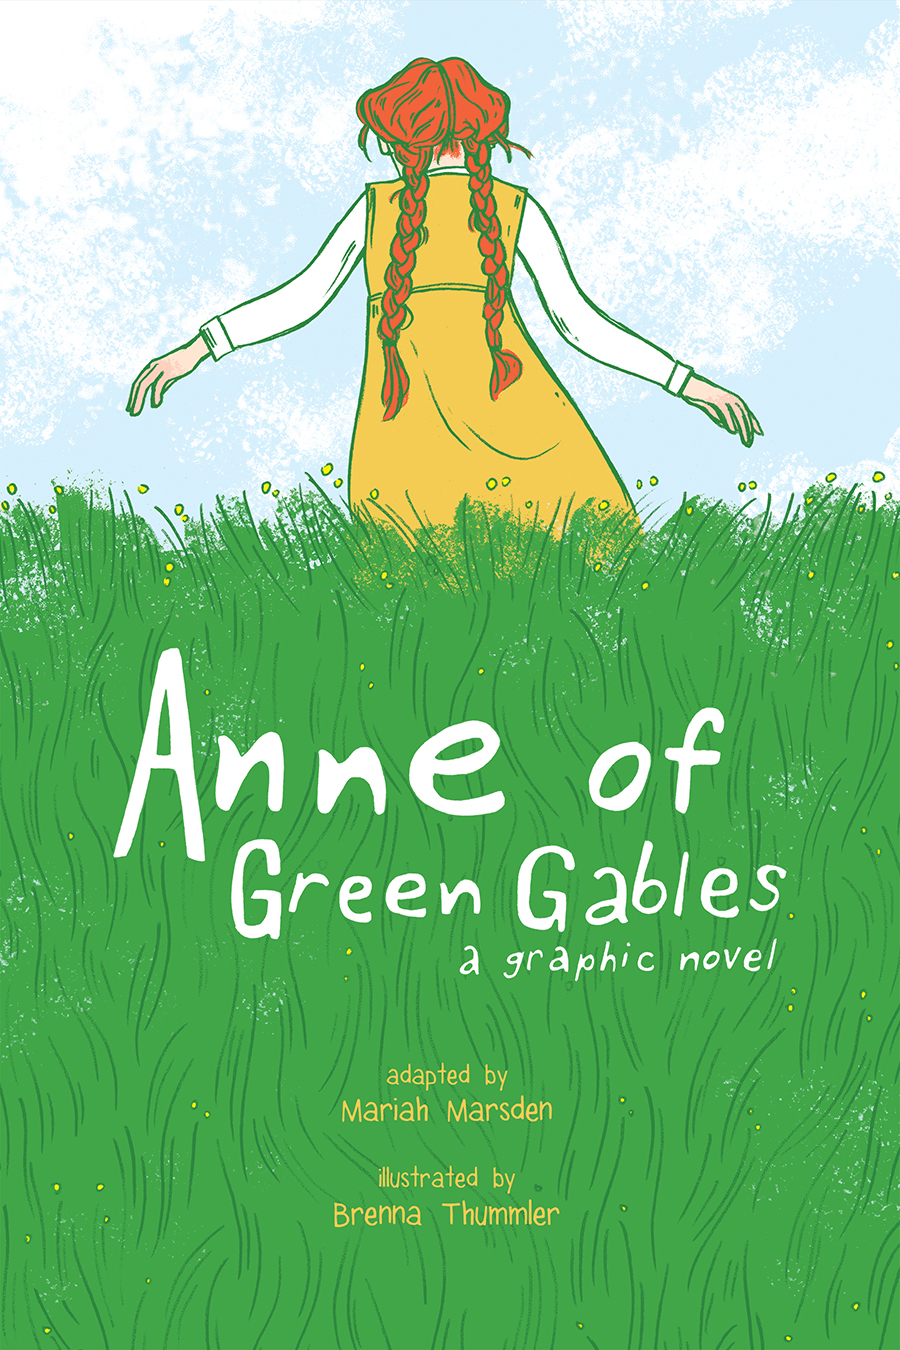 Thummler_Anne of Green Gables_cover.jpg